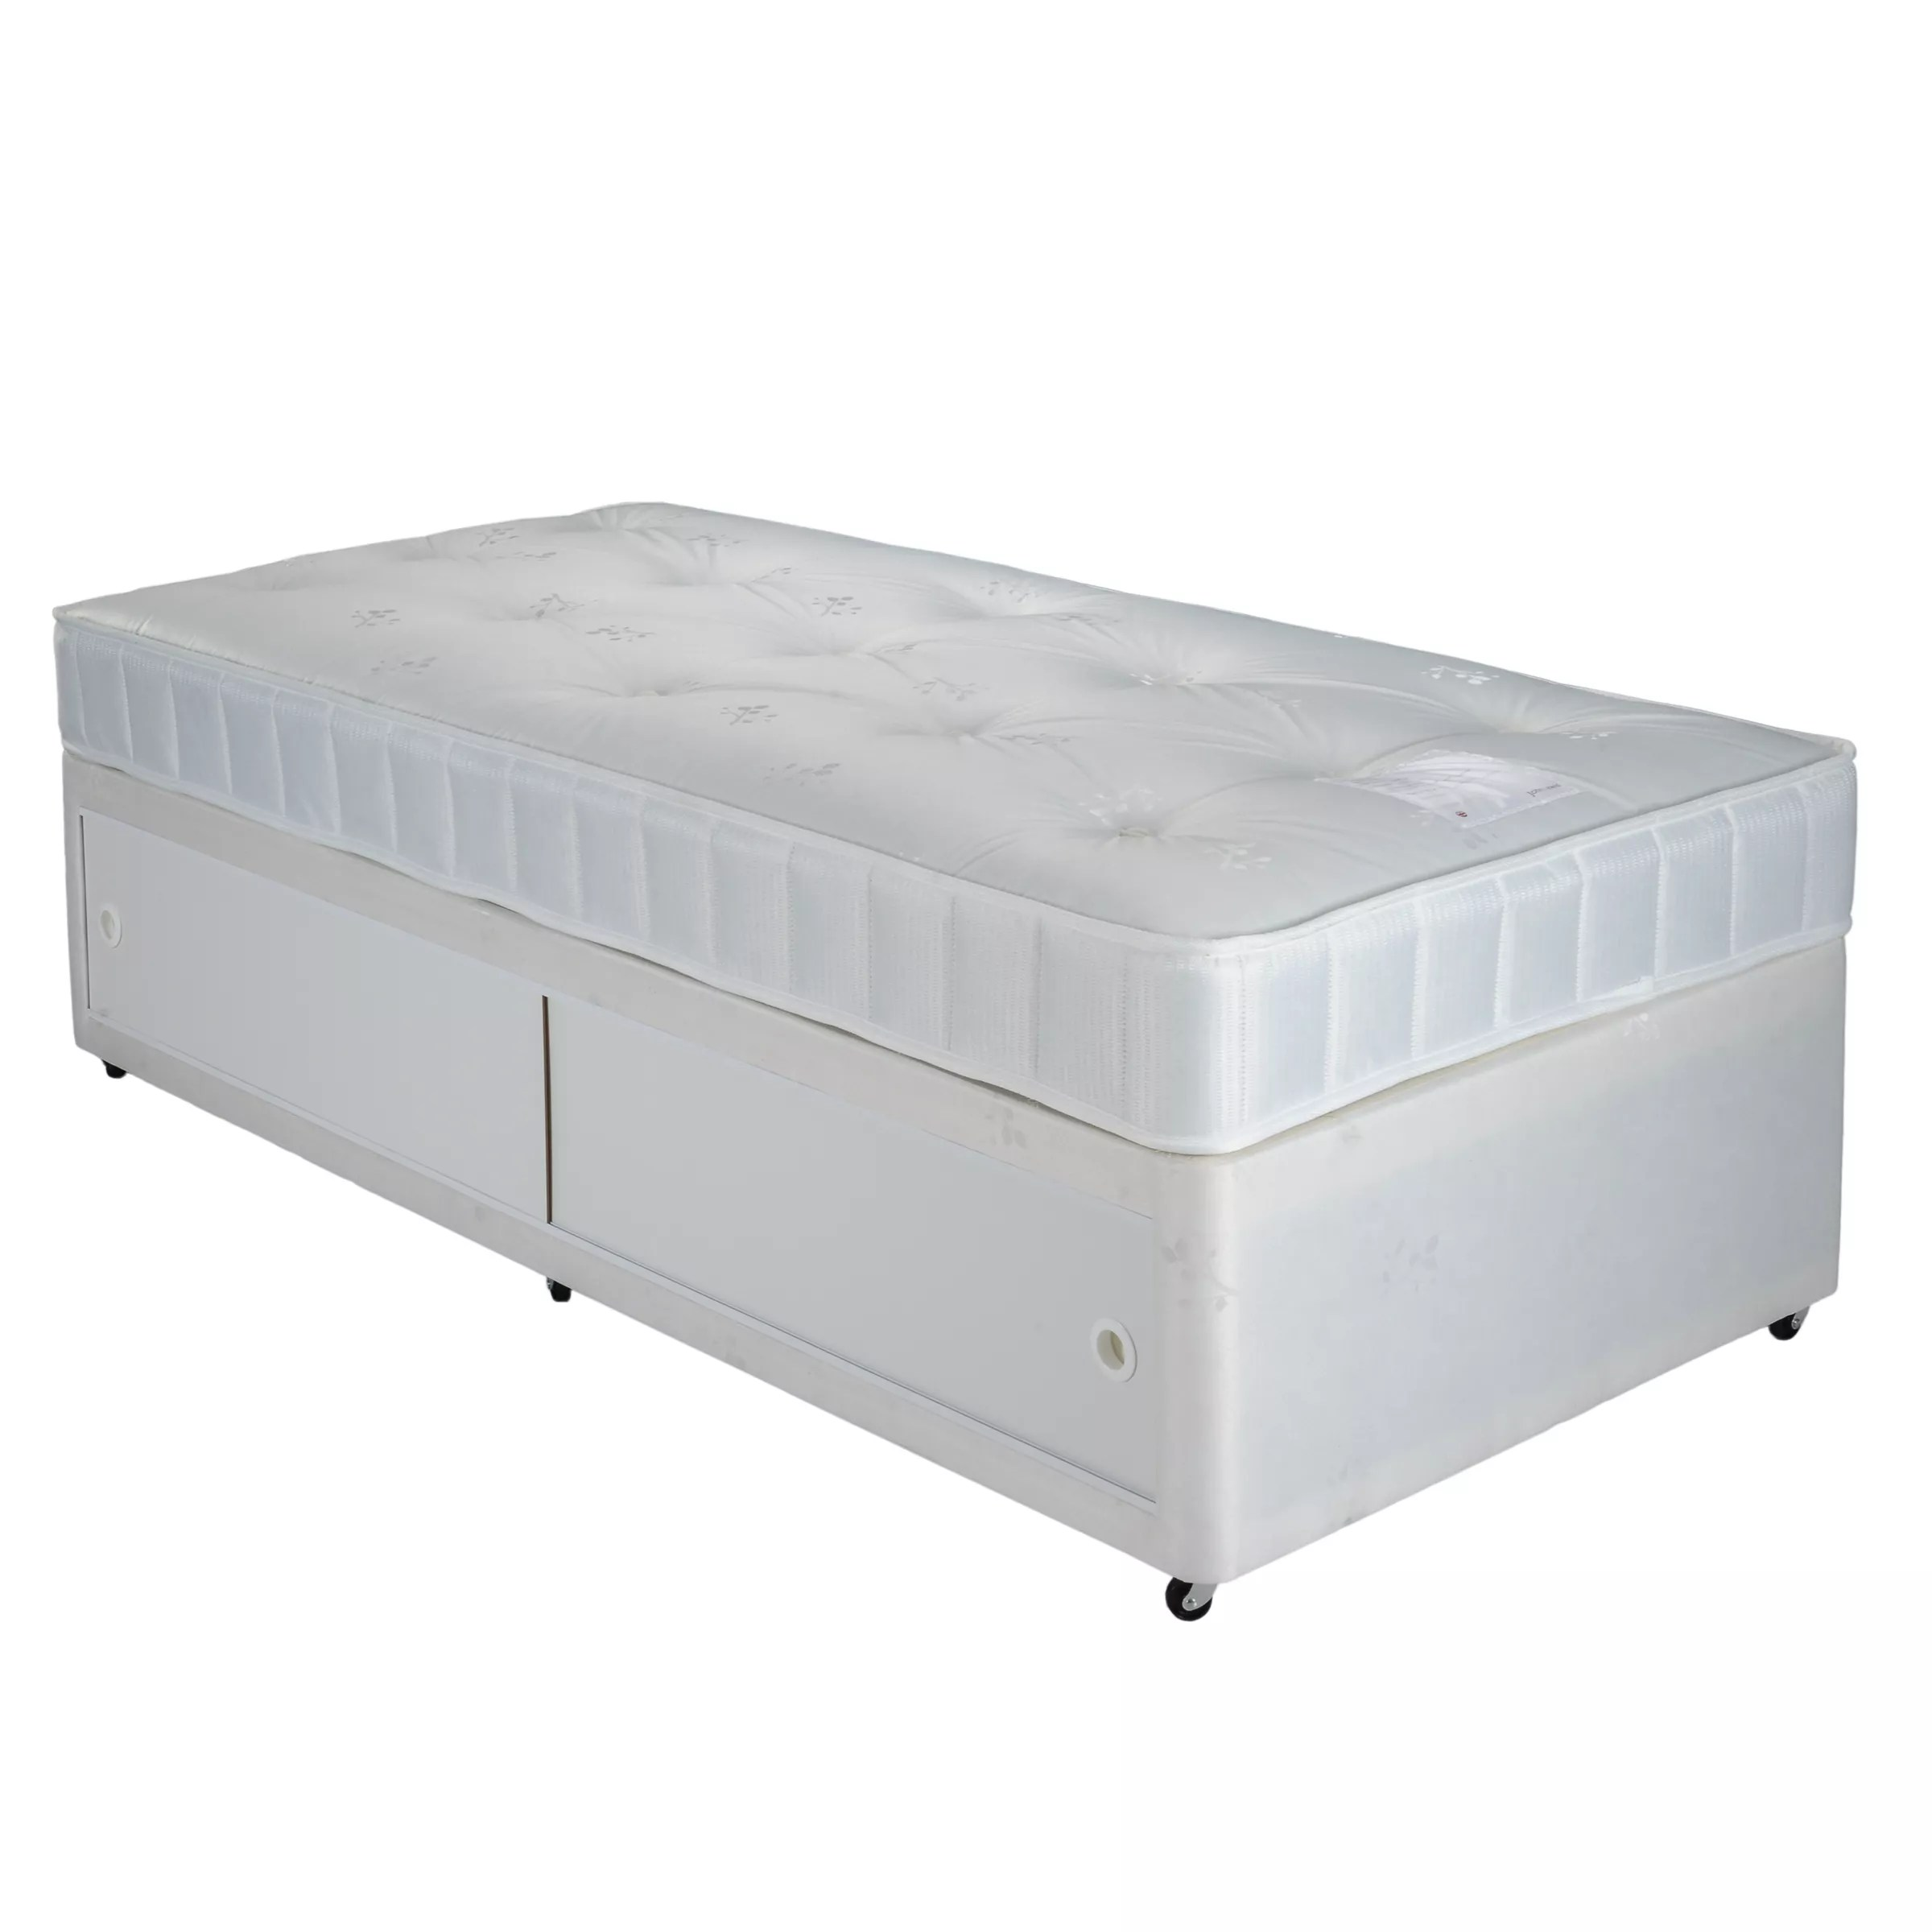 Divan Bed And Mattress Deals John Lewis Partners The Basics Collection Comfort Slide Store Divan Storage Bed And Mattress Set Single